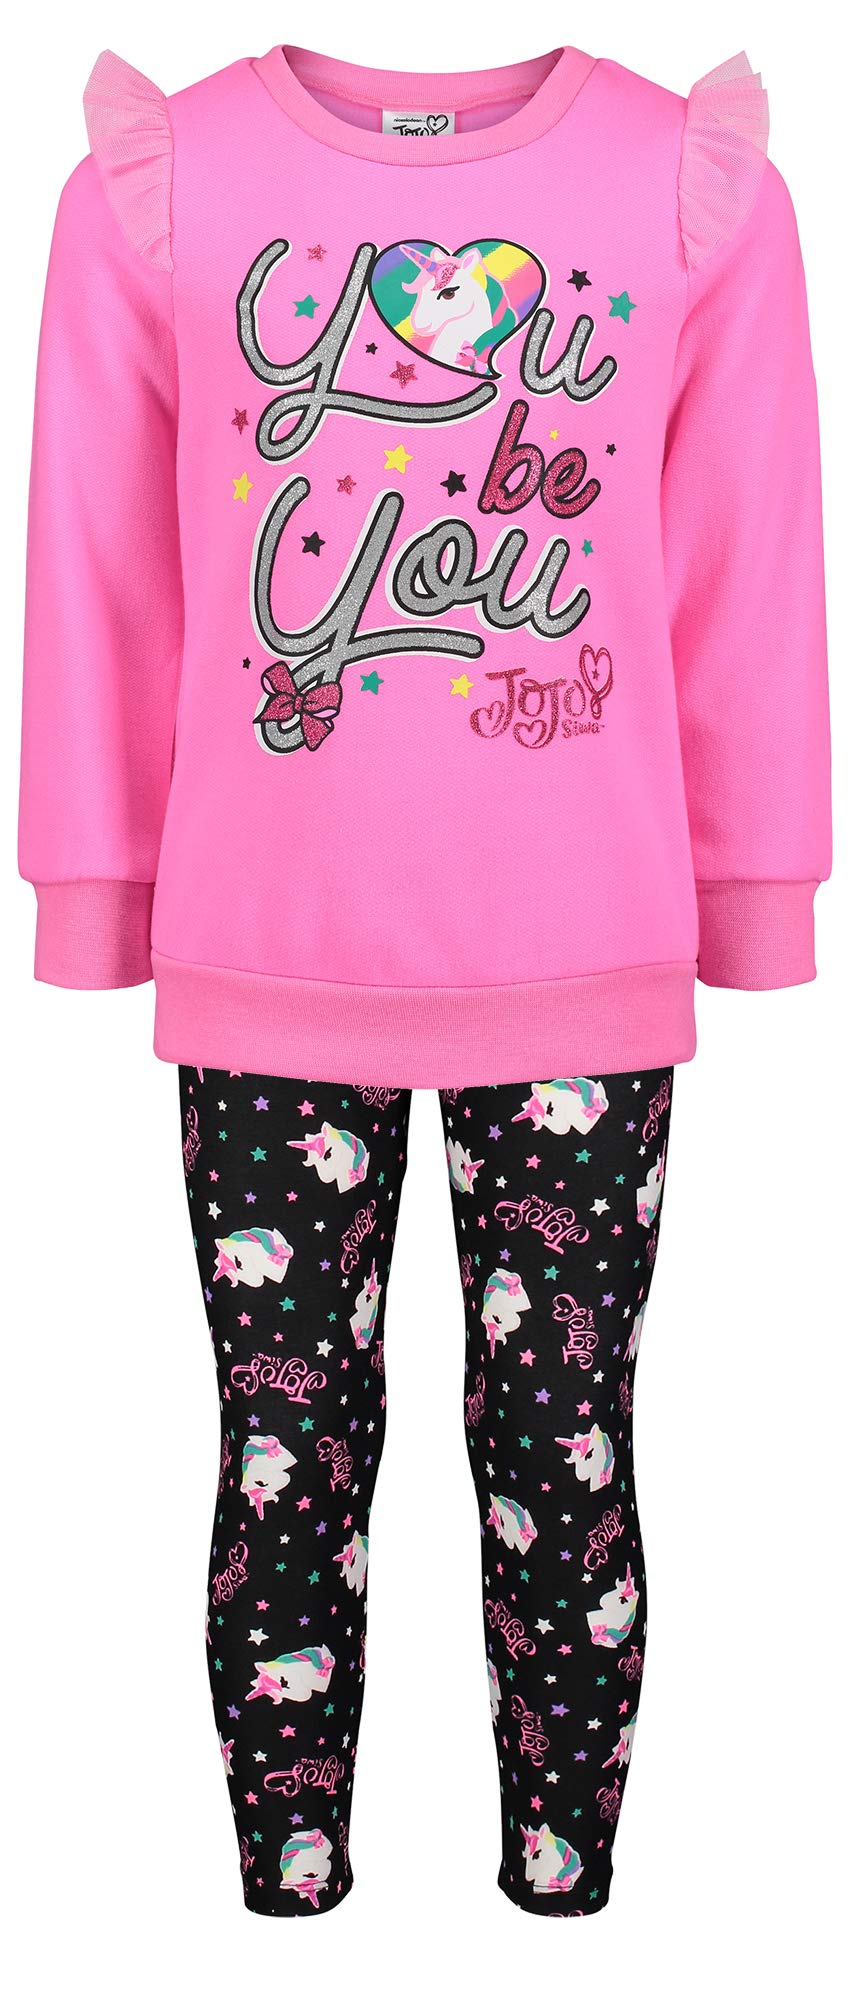 Top and Legging Girls 4-16 JoJo Siwa Unicorn Graphic Hoodie 3-Piece Athleisure Outfit Set